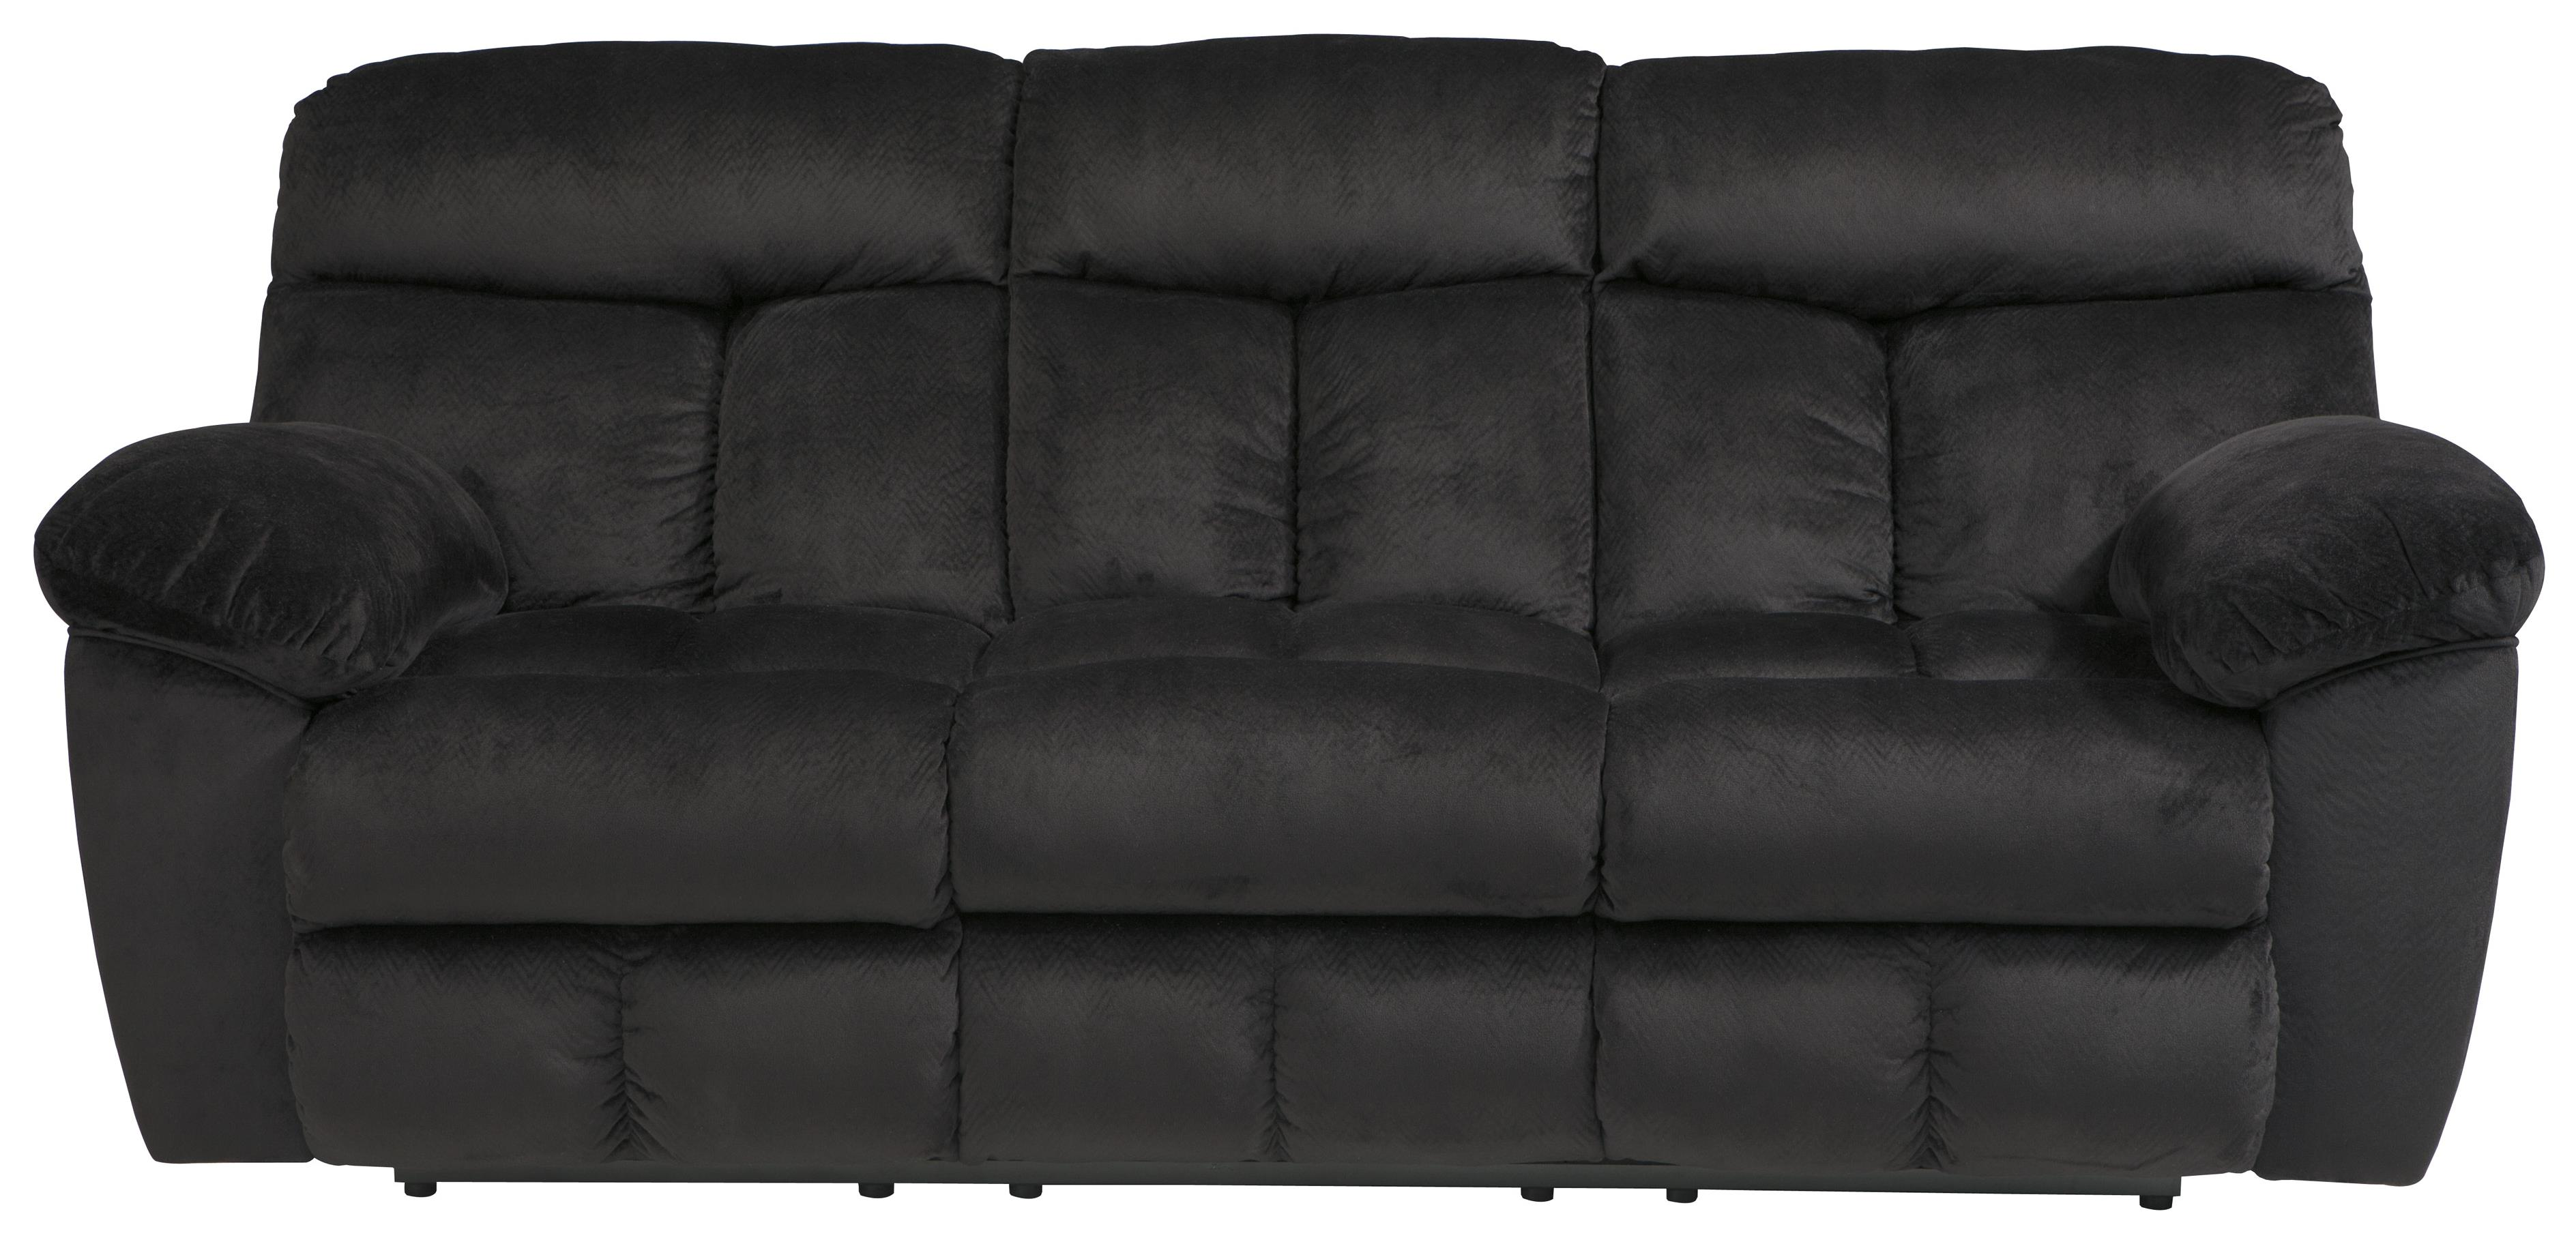 Signature Design by Ashley Saul Reclining Power Sofa - Item Number: 2230187